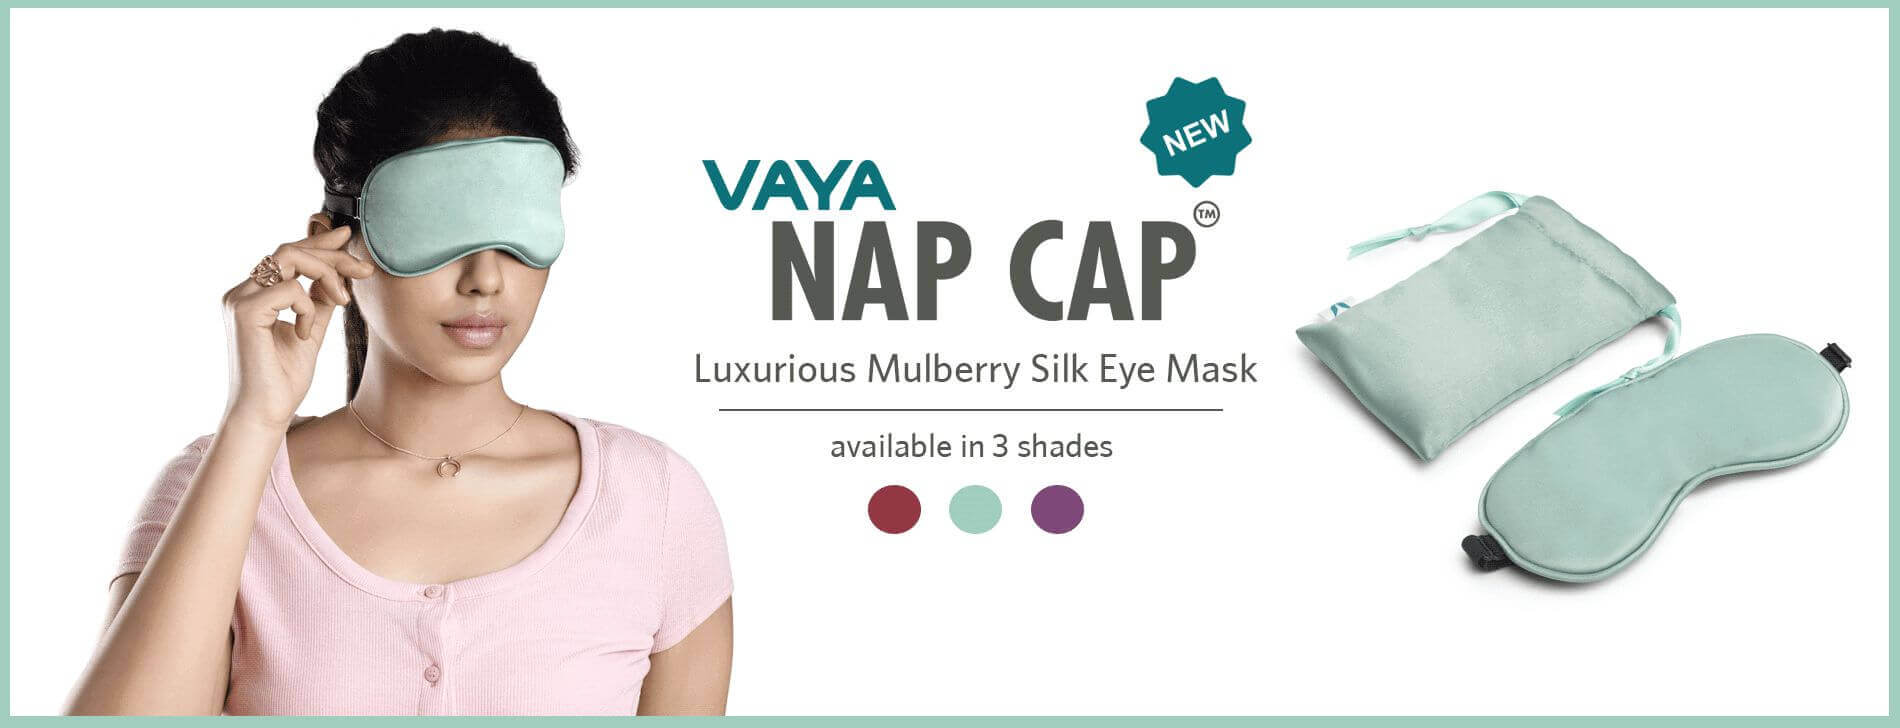 nap-cap-accessories